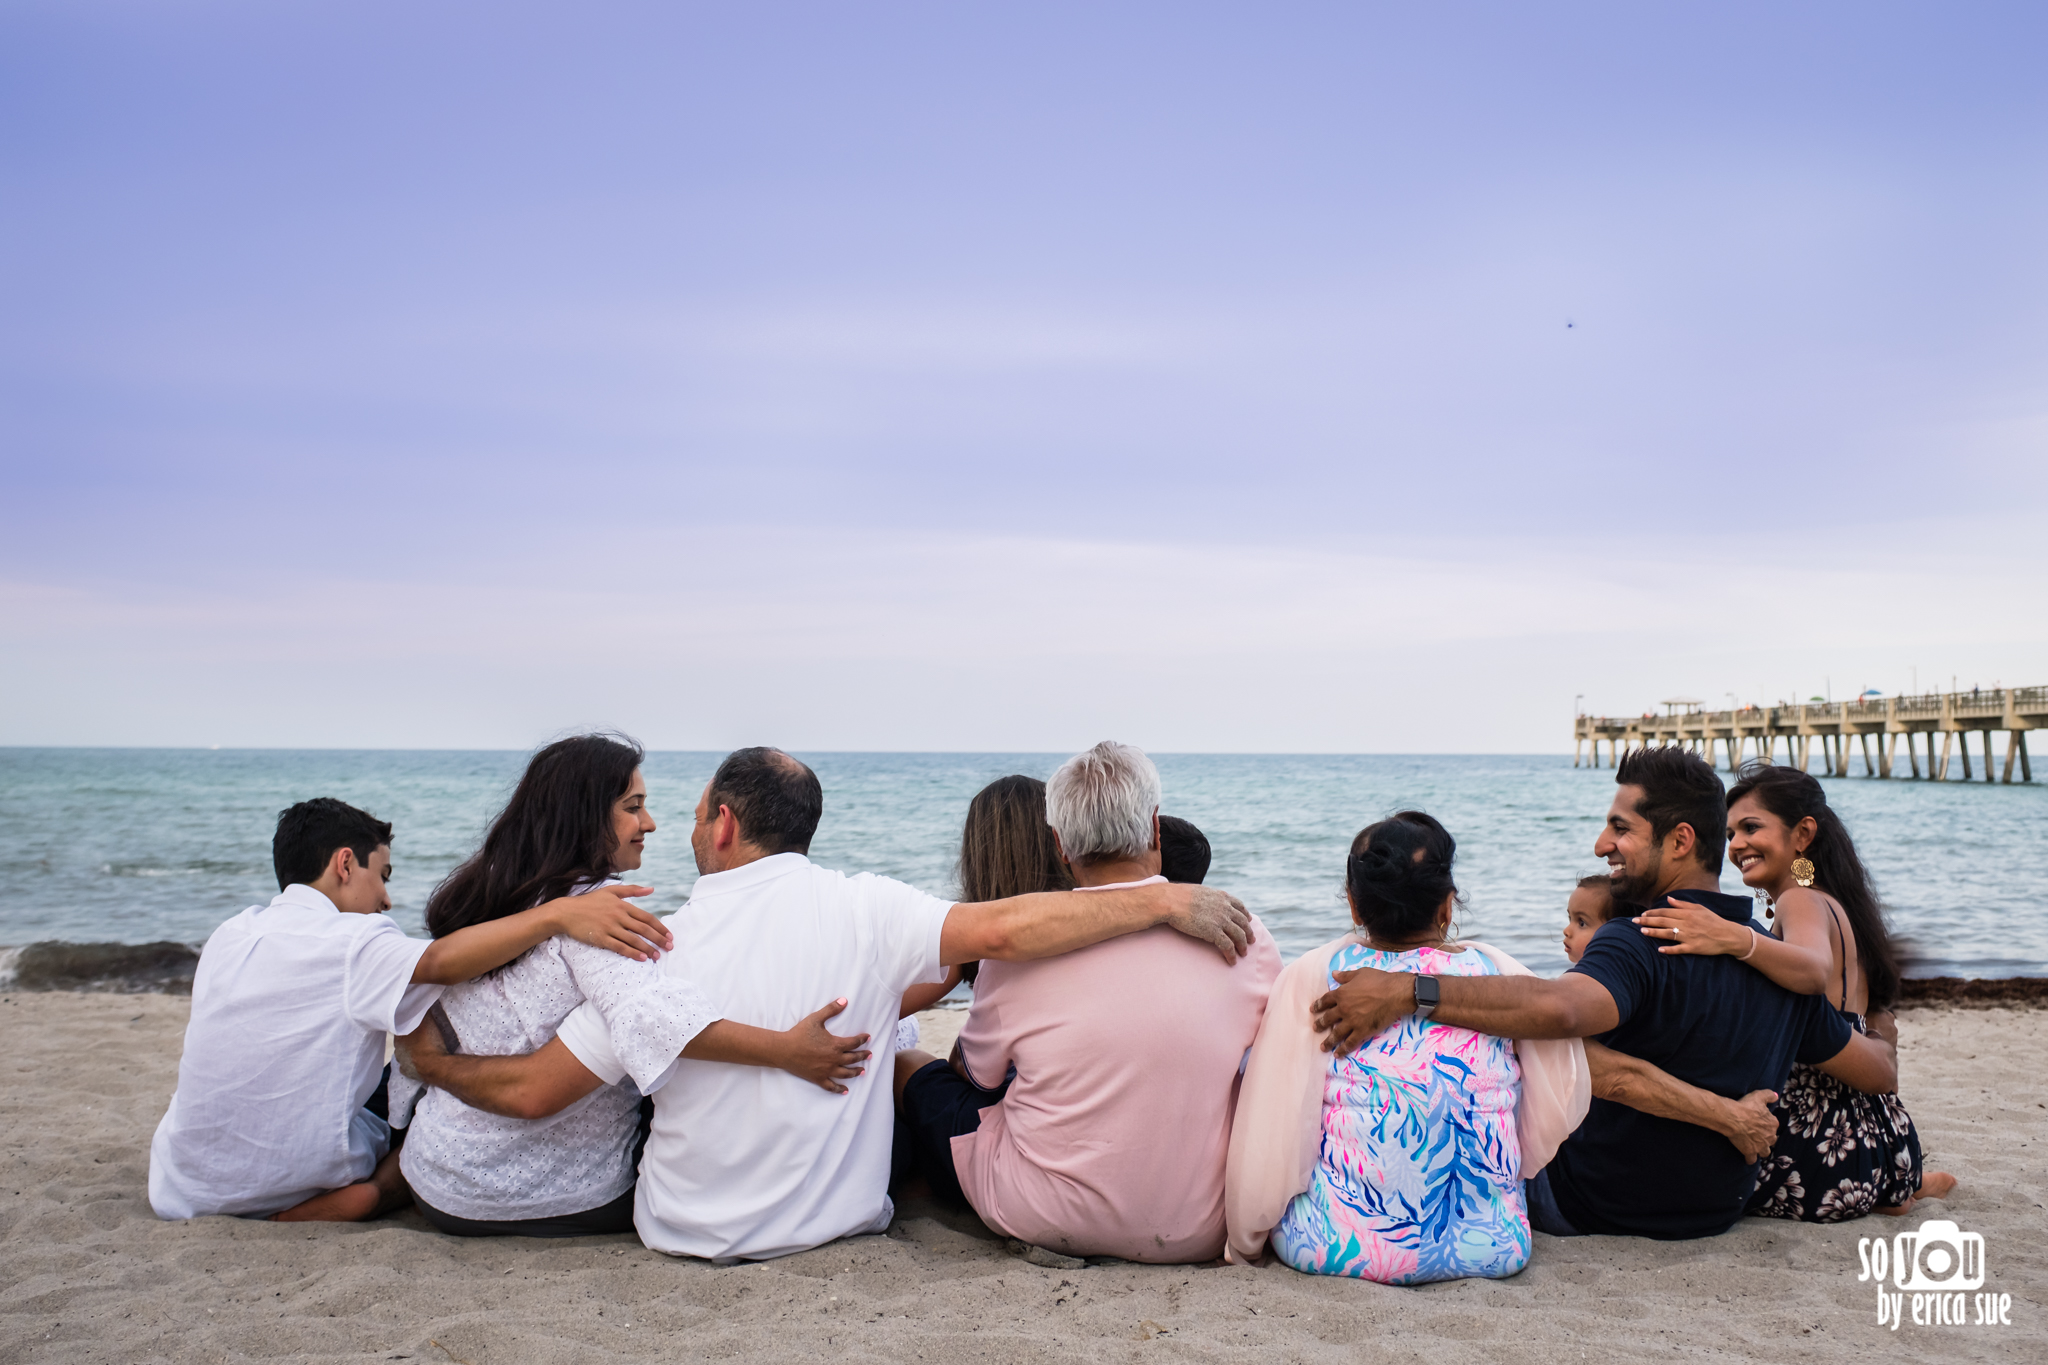 so-you-by-erica-sue-dania-beach-lifestyle-family-photographer-session-fuji-x100f-0707.JPG